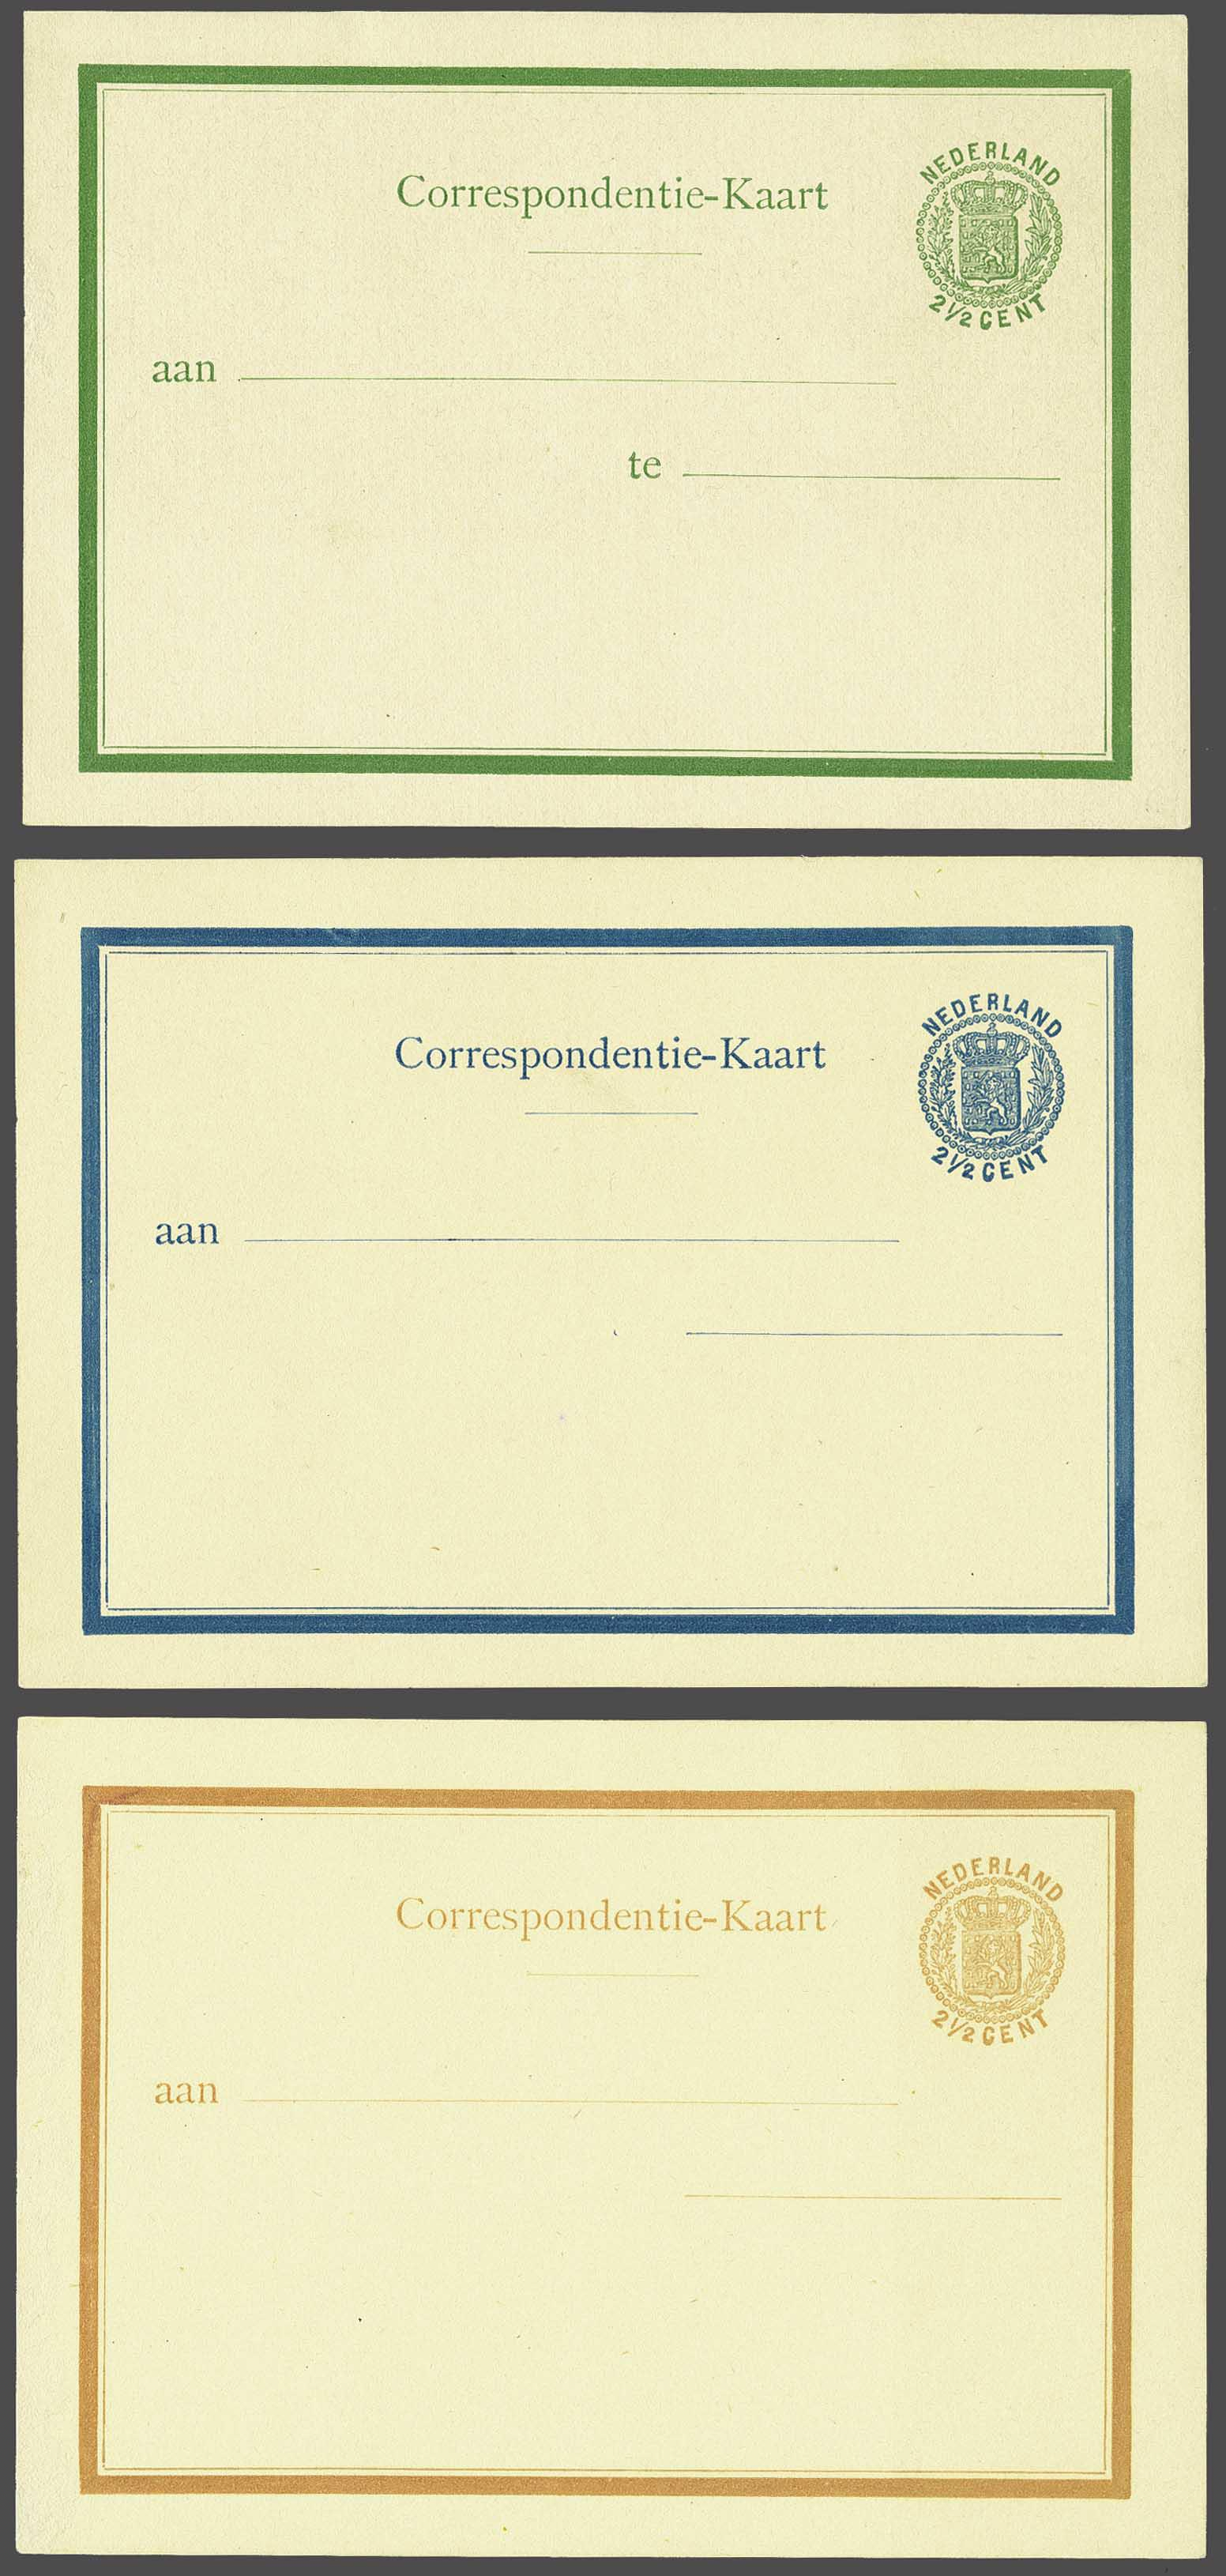 Lot 1828 - Netherlands and former colonies Netherlands Postal Stationery -  Corinphila Veilingen Auction 245-246 Day 3 - Netherlands and former colonies - Single lots, Collections and lots, Boxes and literature